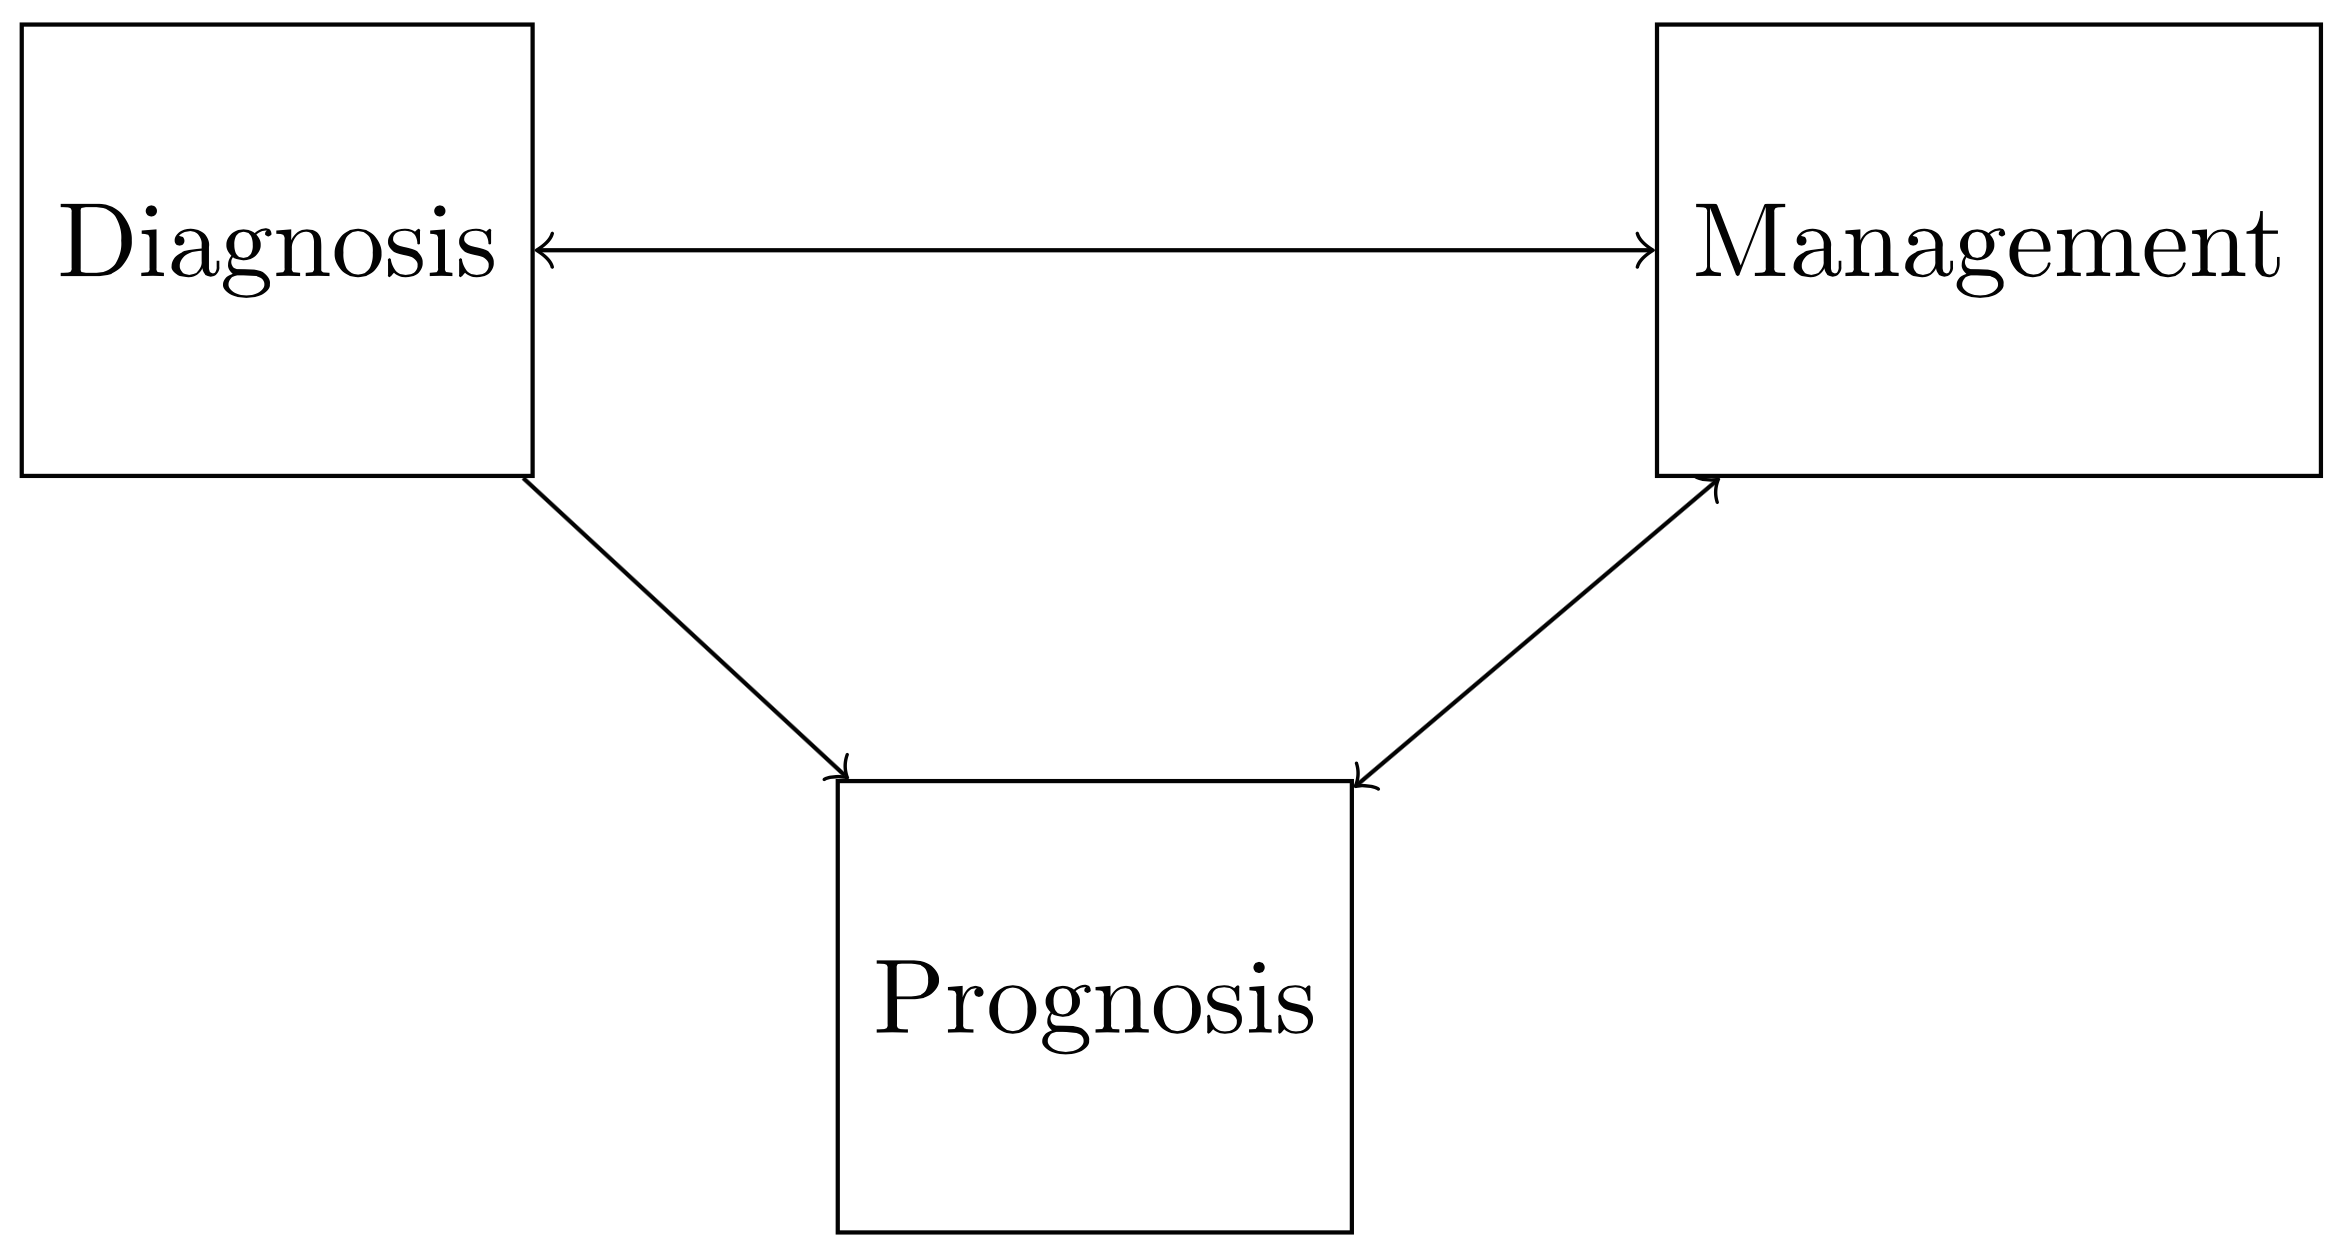 The relationship between diagnosis, prognosis, and management.